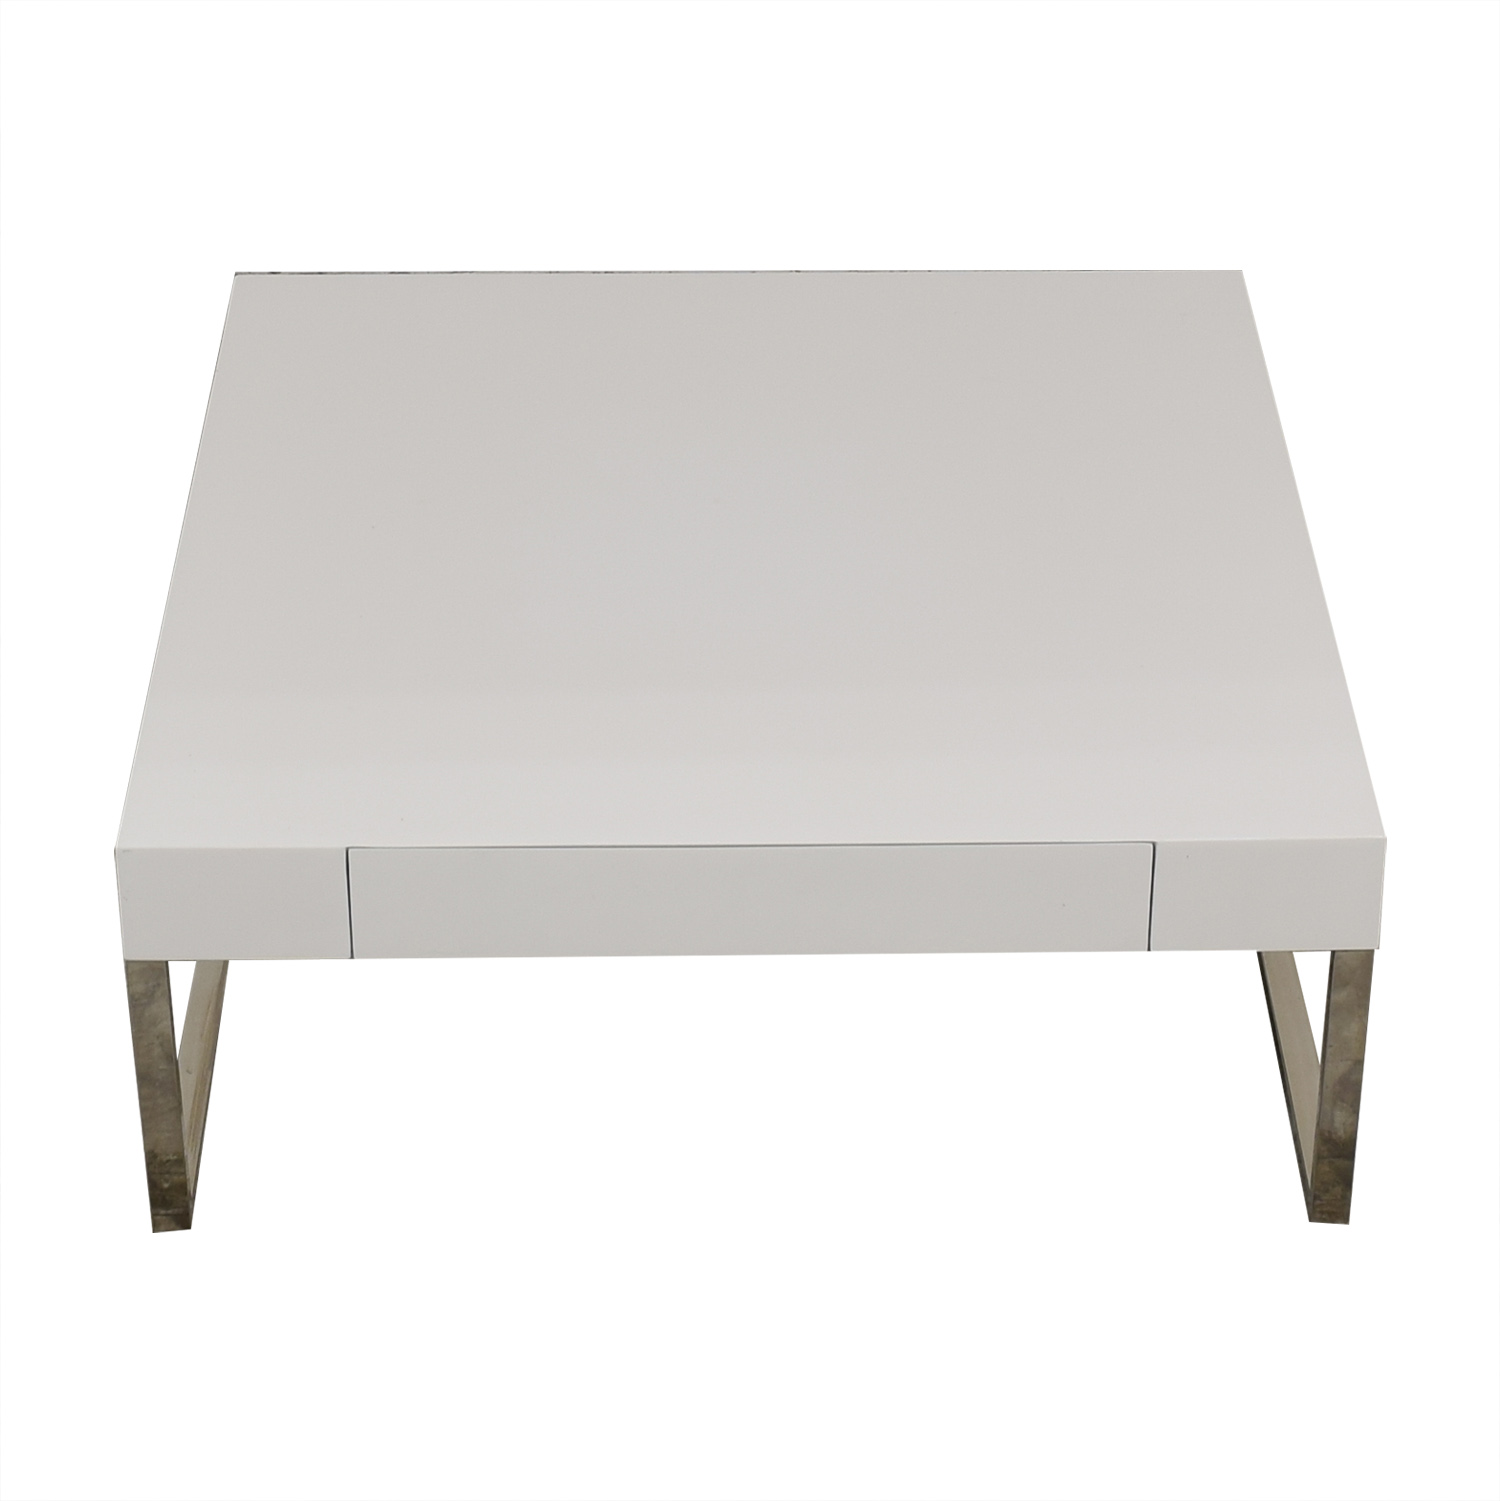 Modani Modani Gavino Coffee Table Coffee Tables